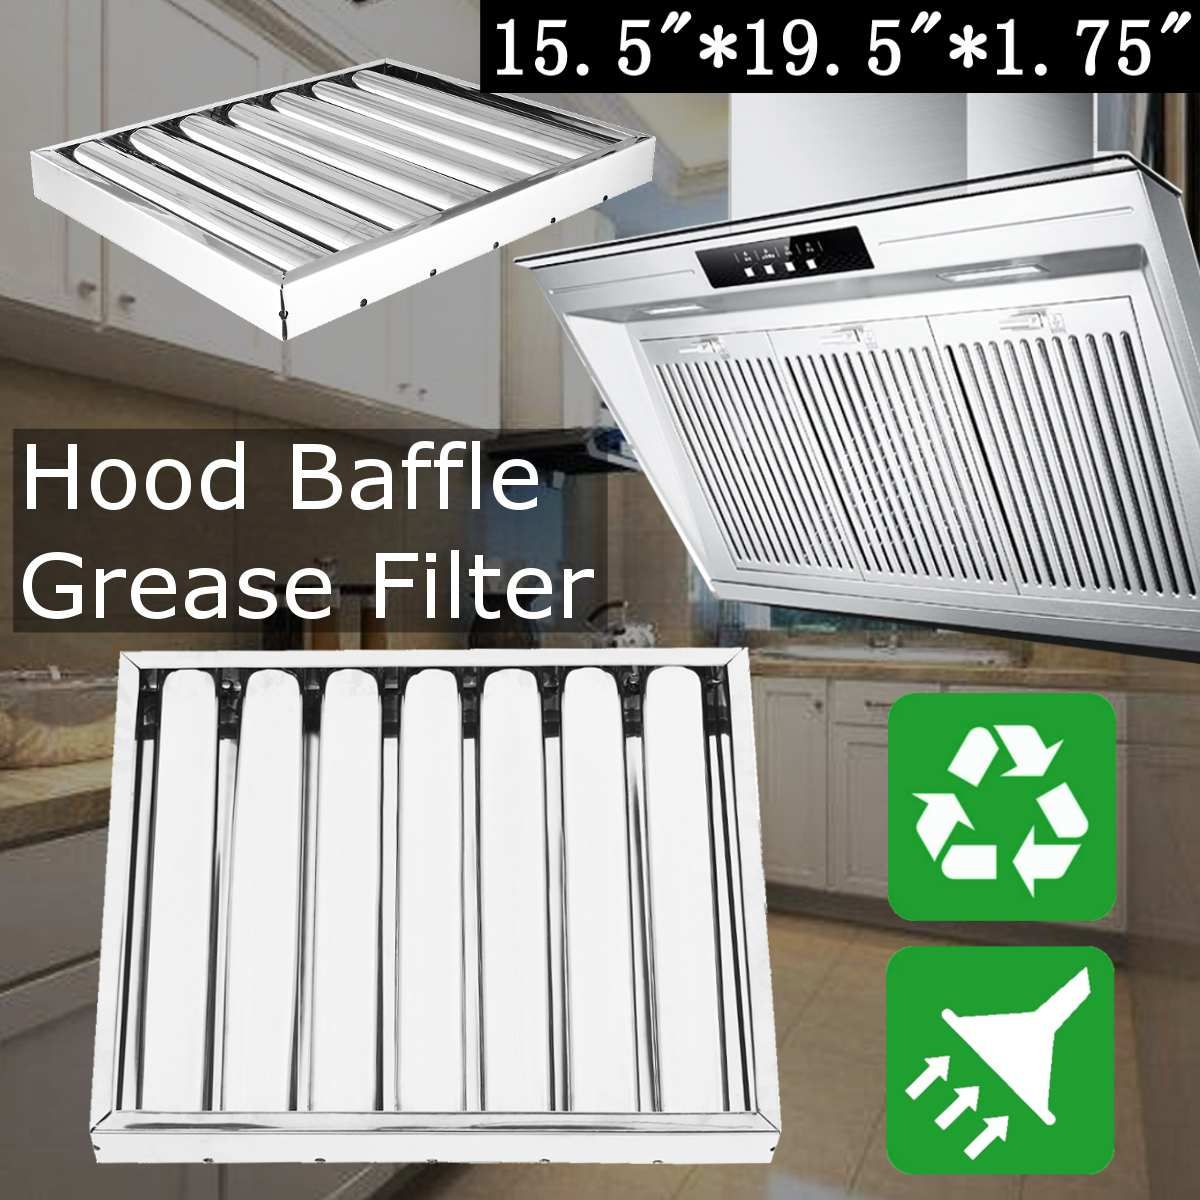 US $34.17 33% OFF|40x50x5cm Stainless Steel Kitchen Hood Extractor Fan  Grease filter baffle Hood grease filter Kitchen Cooker Clean Pollution  mesh-in ...